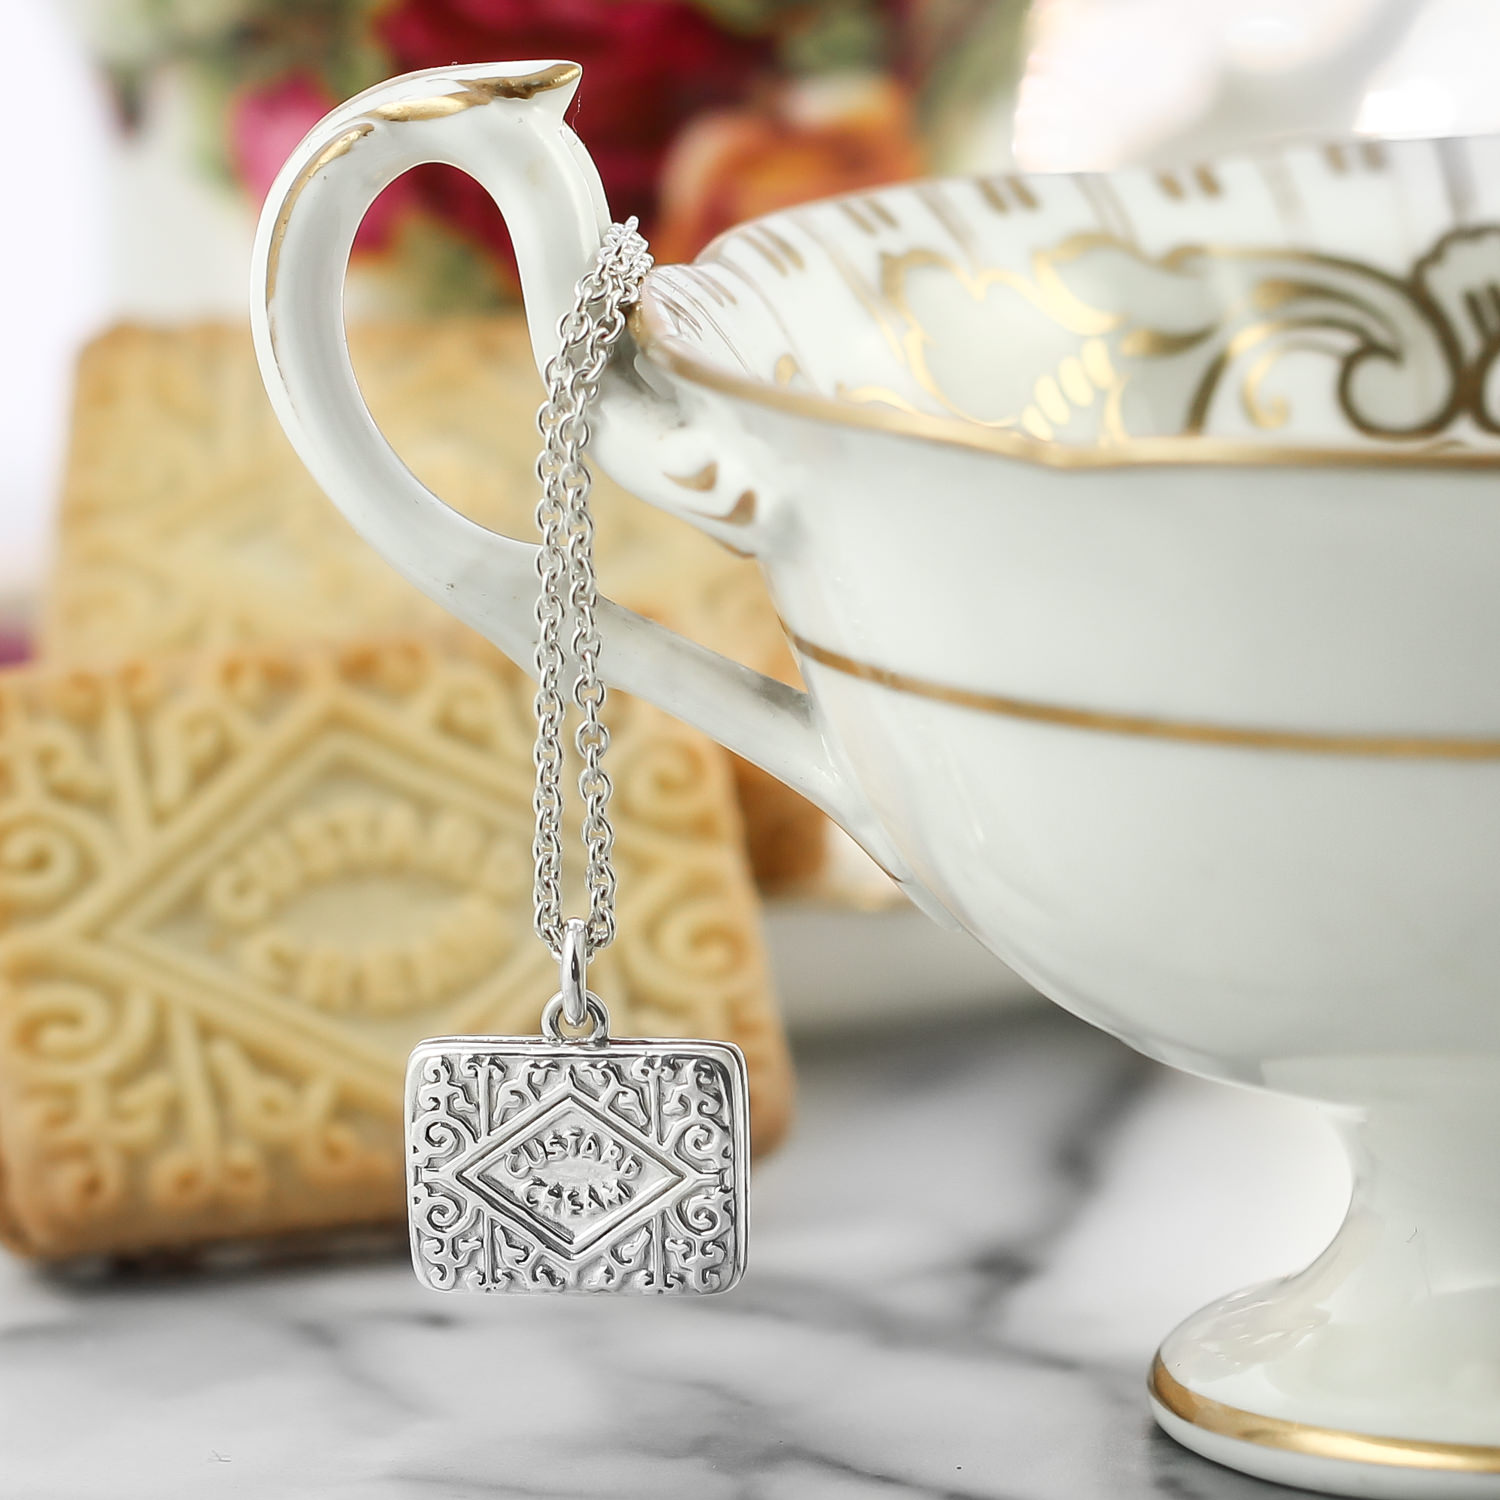 Solid-sterling-silver-large-custard-cream-charm-necklace.JPG